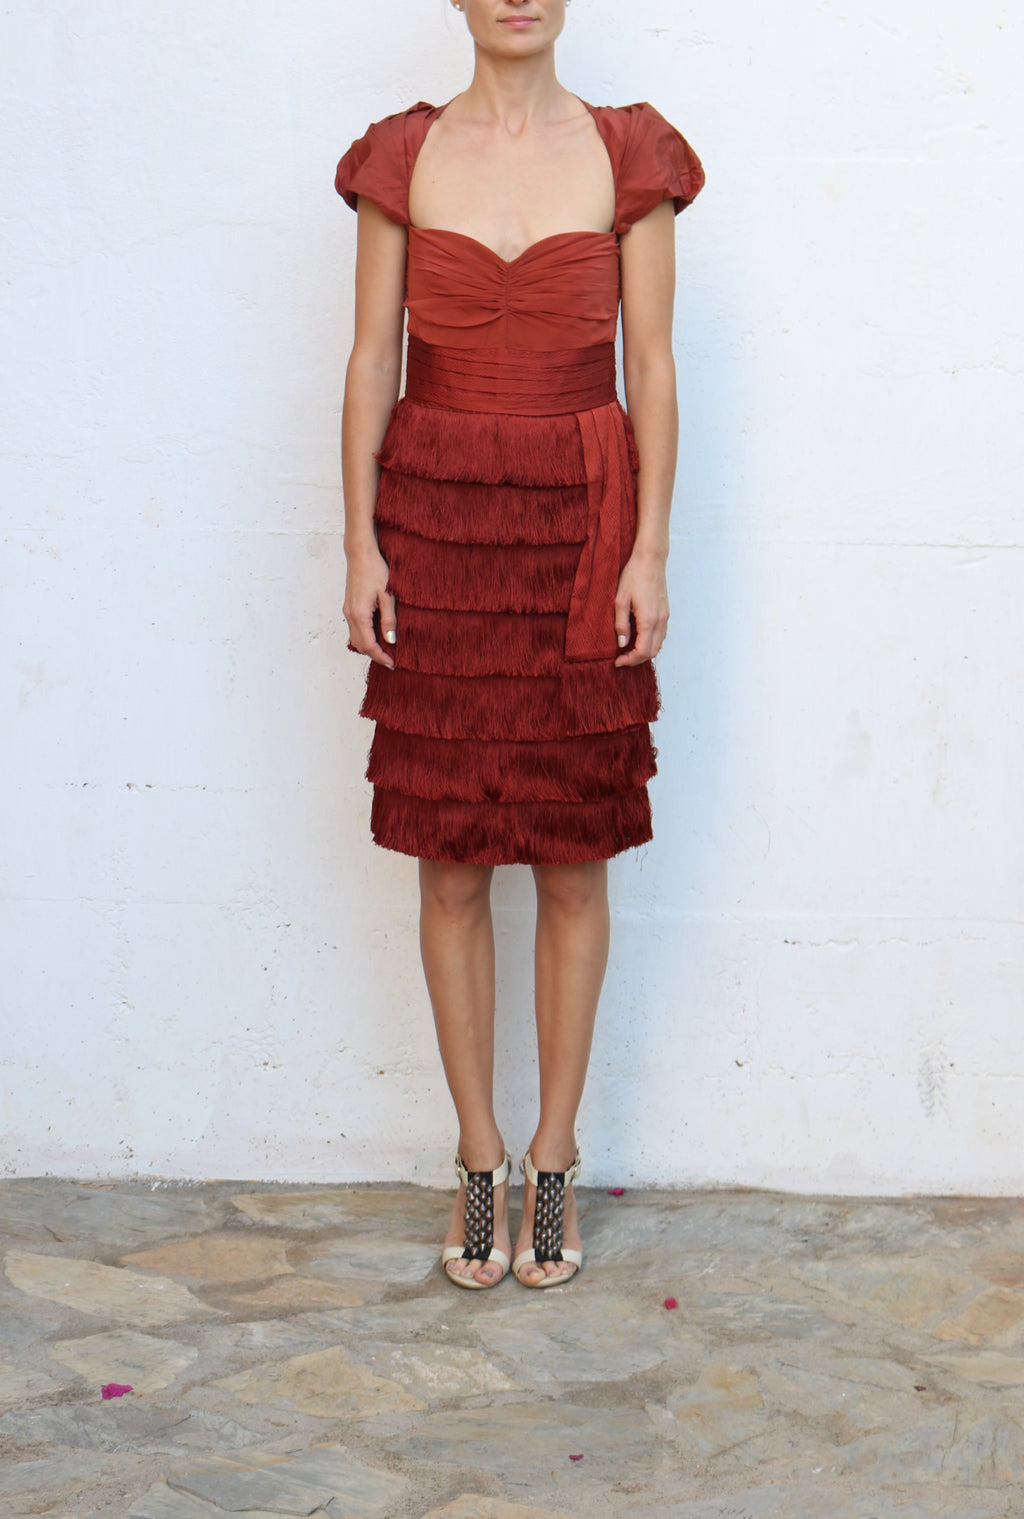 ZAC POSEN Copper Mini Cocktail Dress Tiered Fringes Size 6